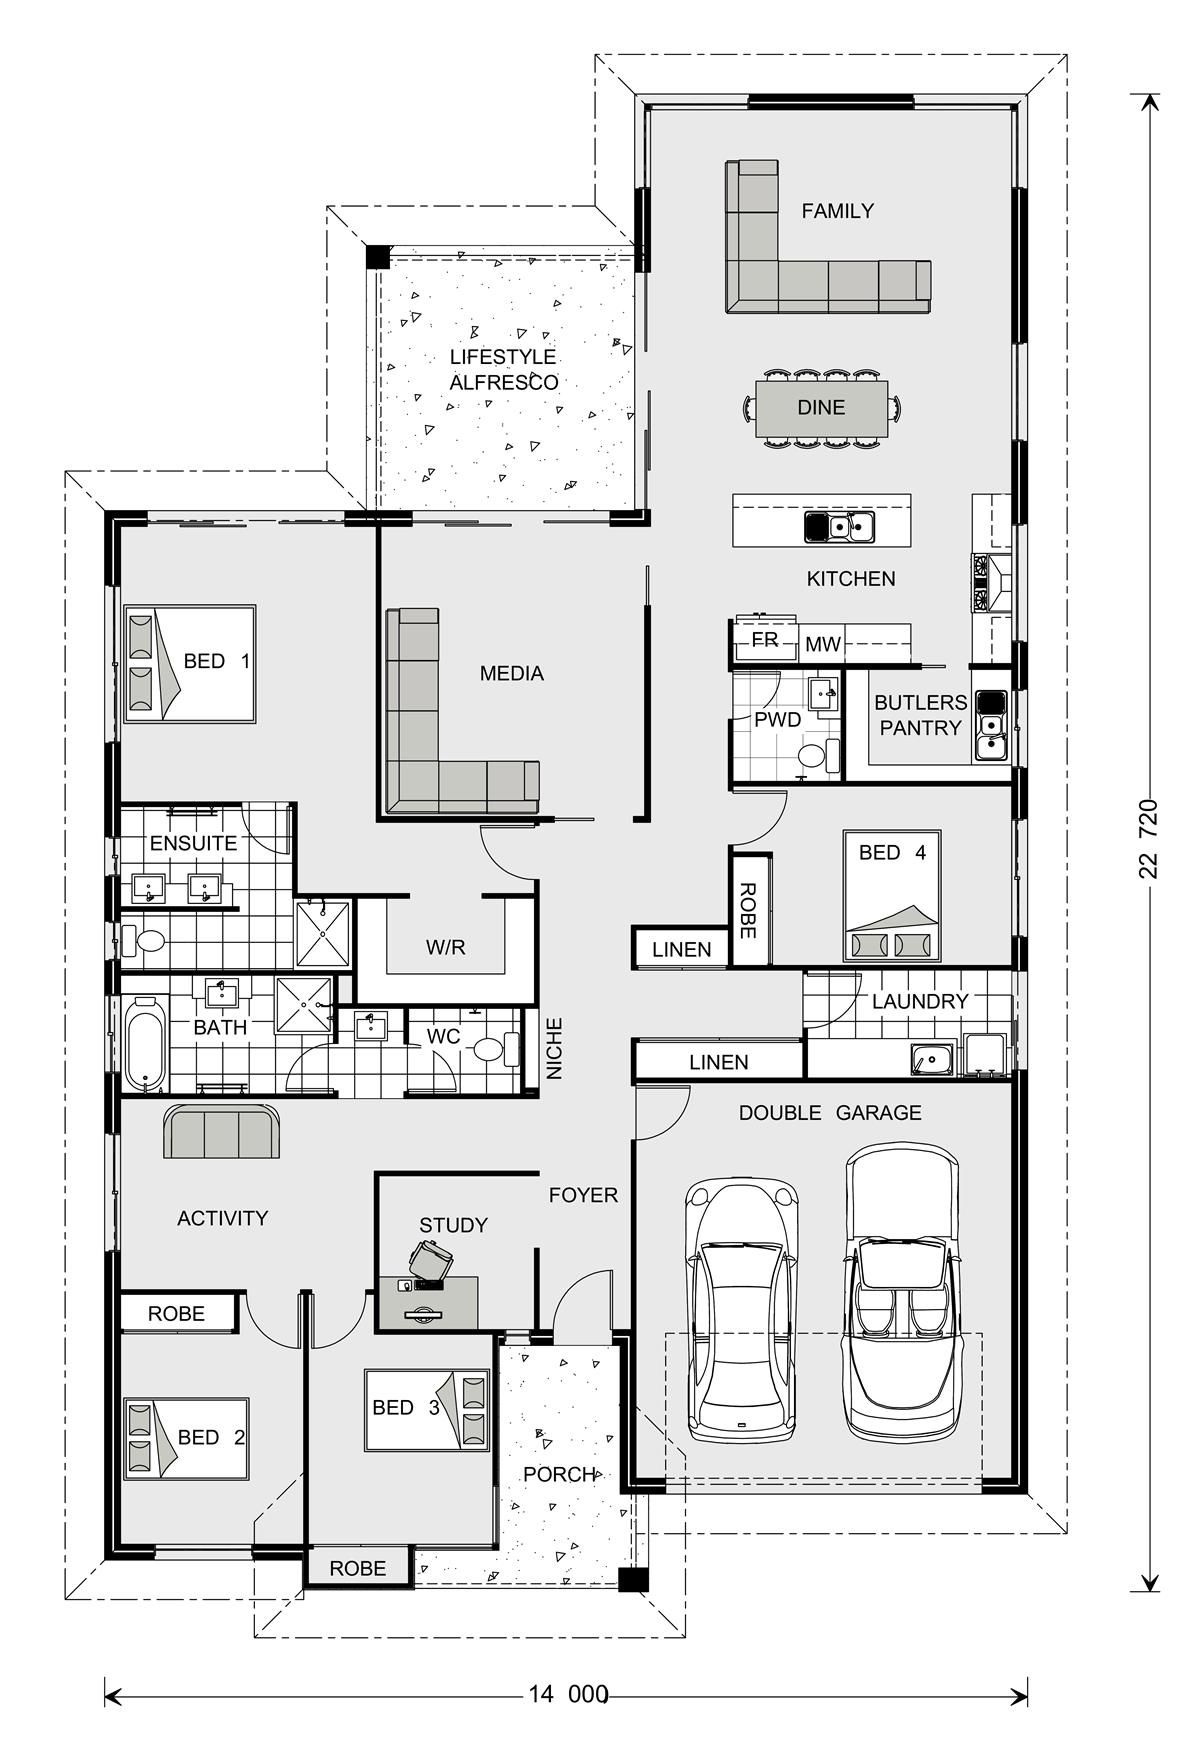 Gj Gardener Nsw Hawkesbury Fantastic For Families Who Have Guests A Lot They Have There Own Loo Dream House Plans House Plans House Design